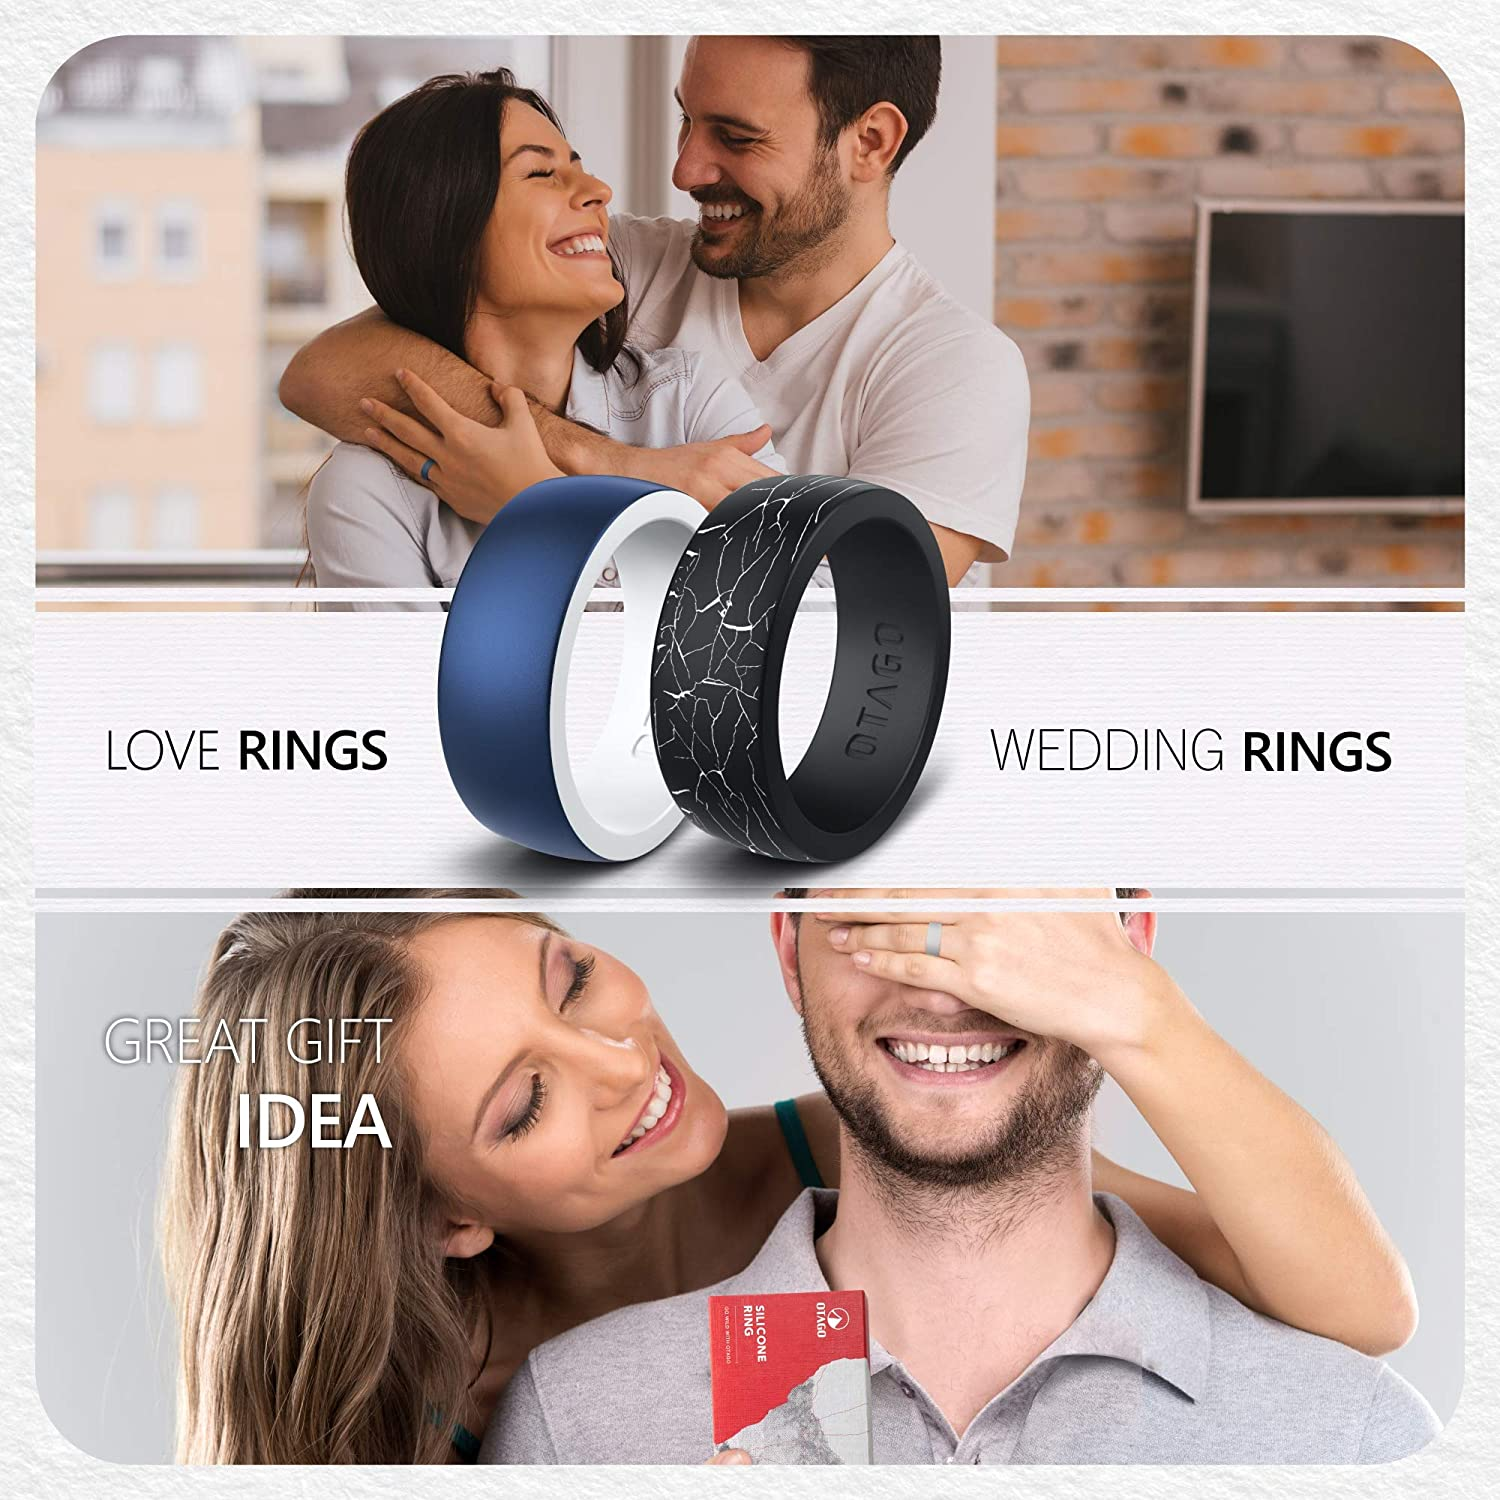 Size5-12 OTAGO Silicone Rings Wedding Bands for Women Men,8 Packs Colorful Rings Soft and Safe for Sports,Housework,Comfortable Fit,Fashion Style-Metal and Vivid Matte Colours